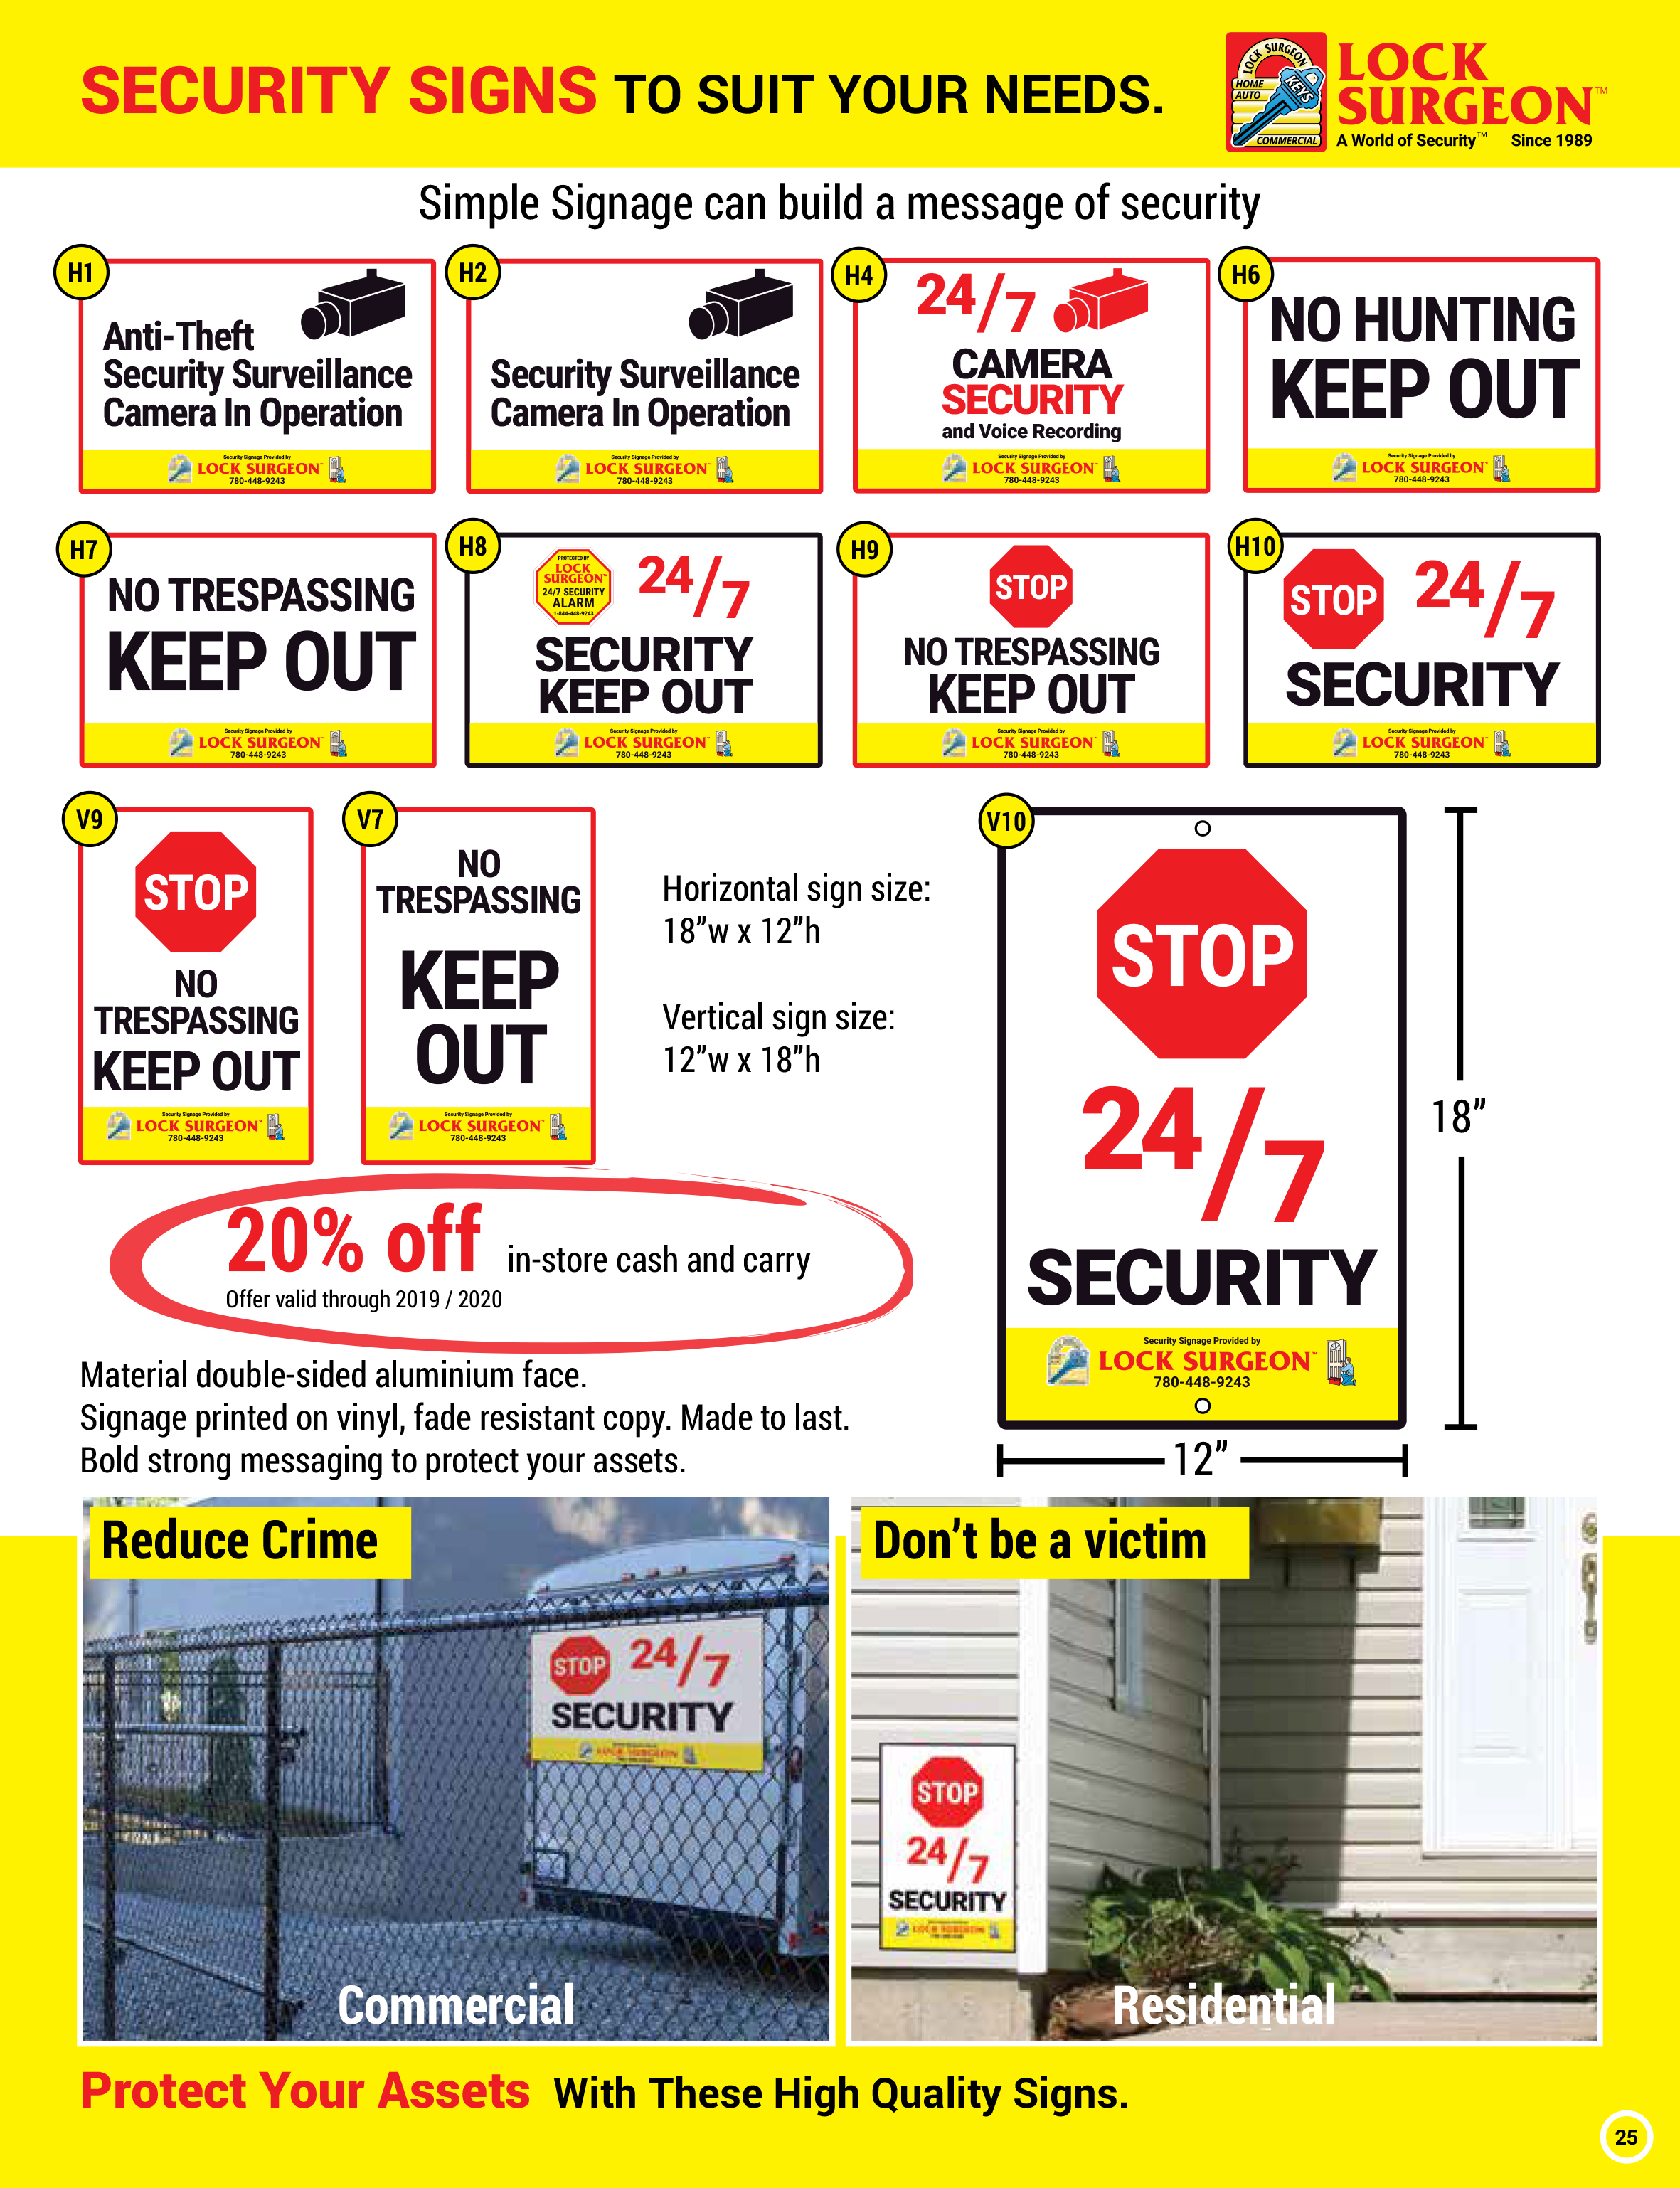 Standard signage warning of camera security, anti-theft signage, no-trespassing signage, made tough to last for years. This fade-resistant signage will send a strong security message.